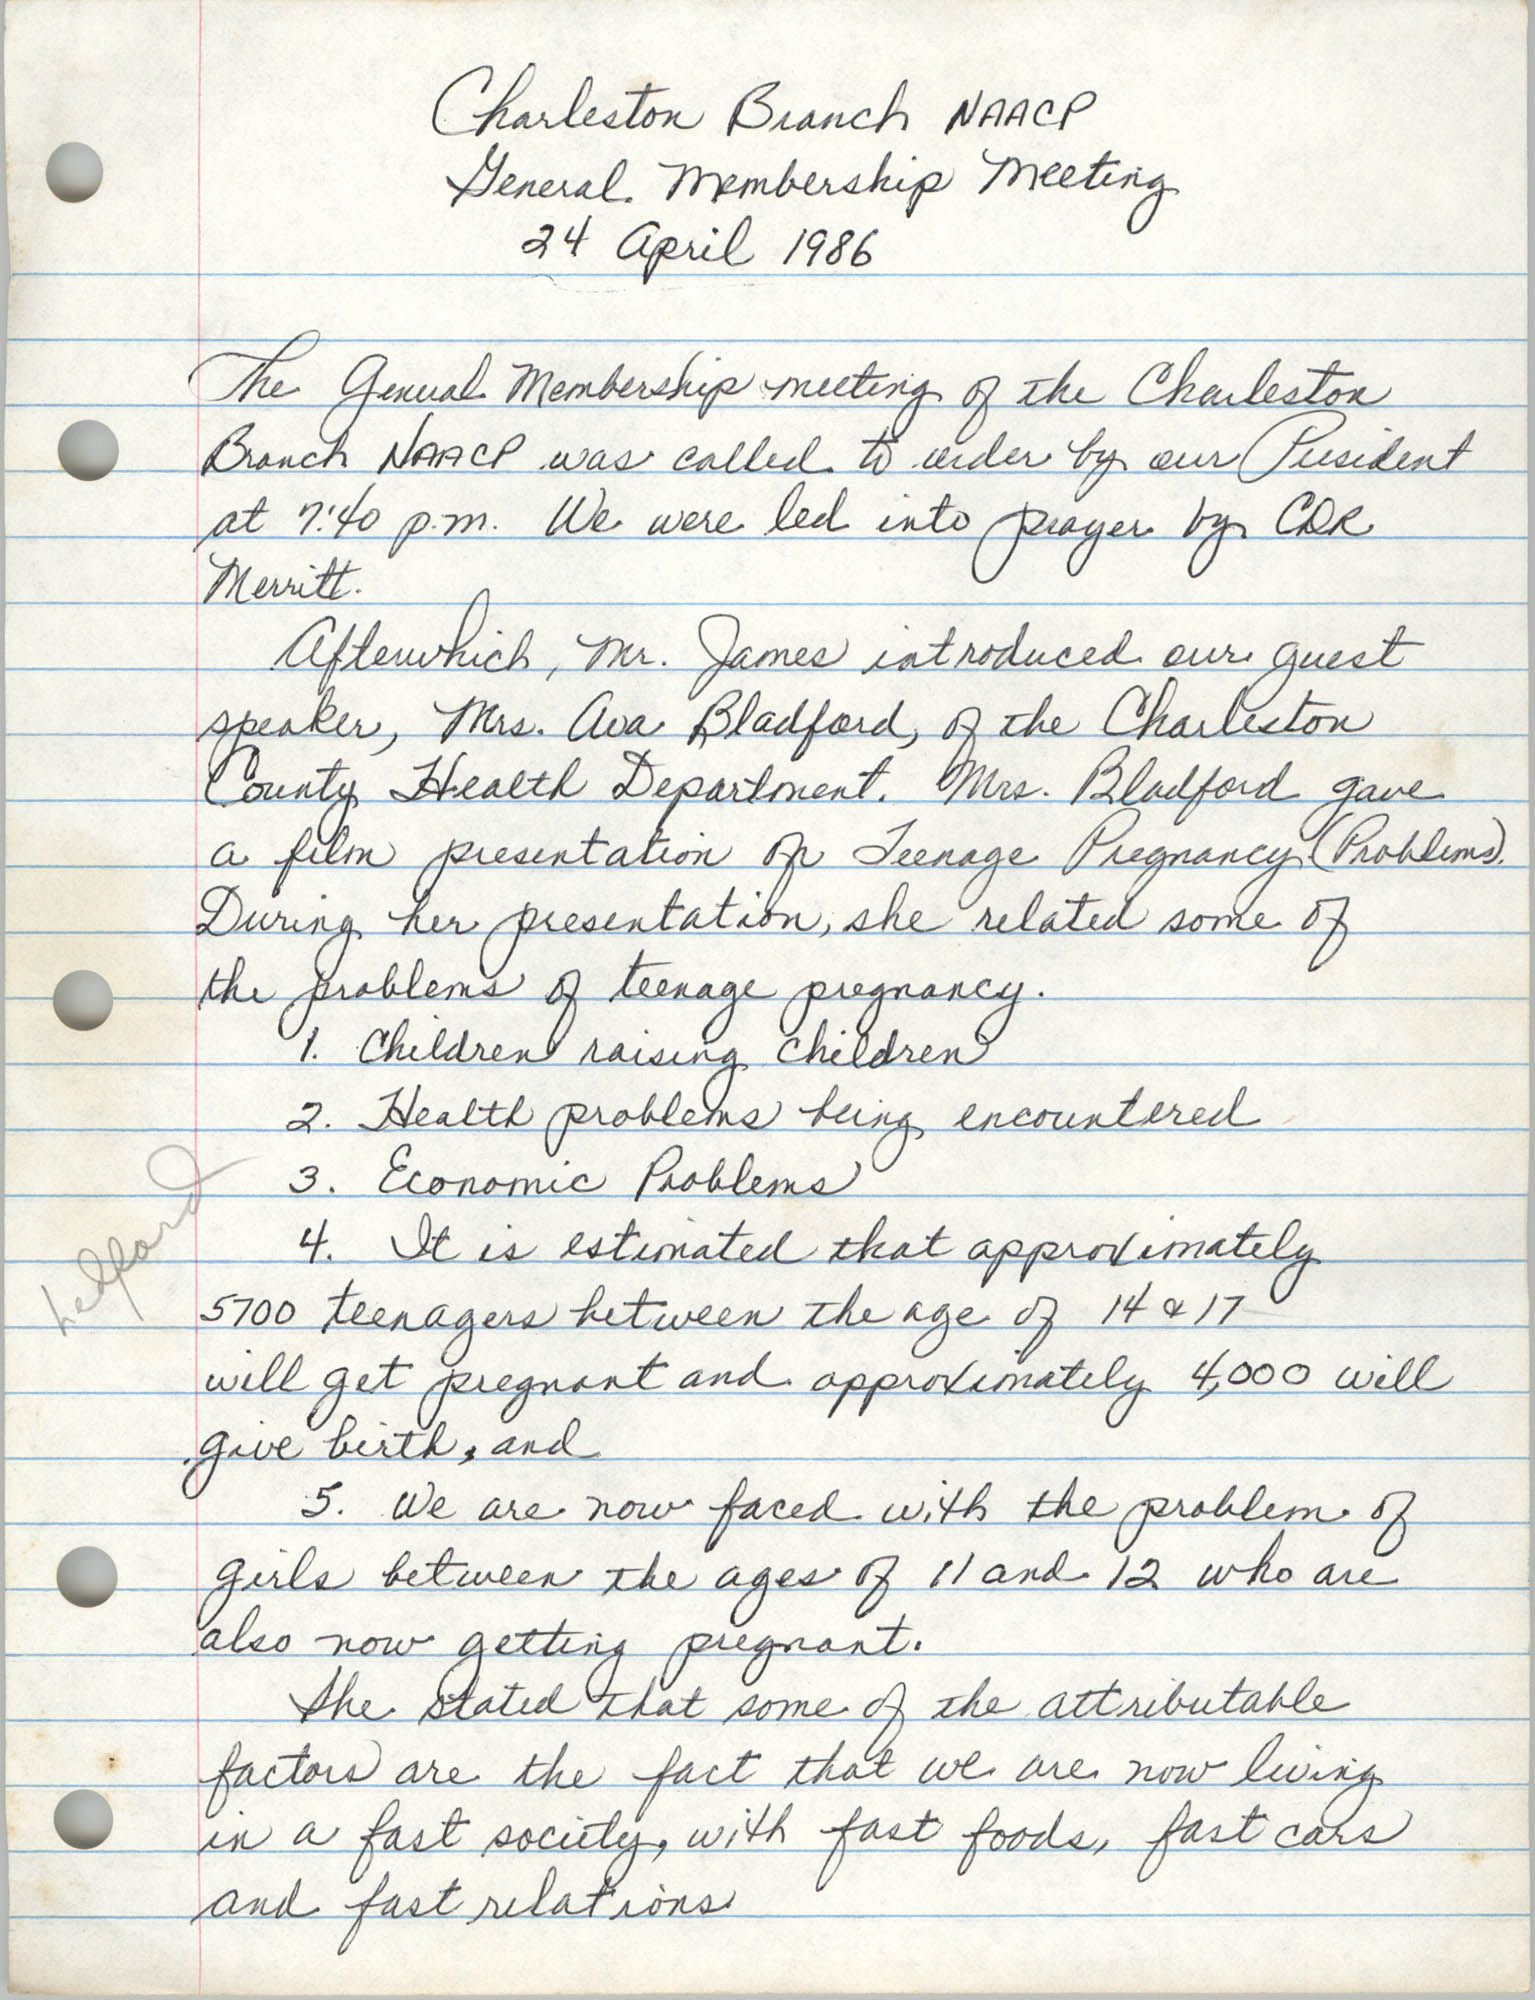 Minutes, Charleston Branch of the NAACP, General Membership Meeting, April 24, 1986, Page 1